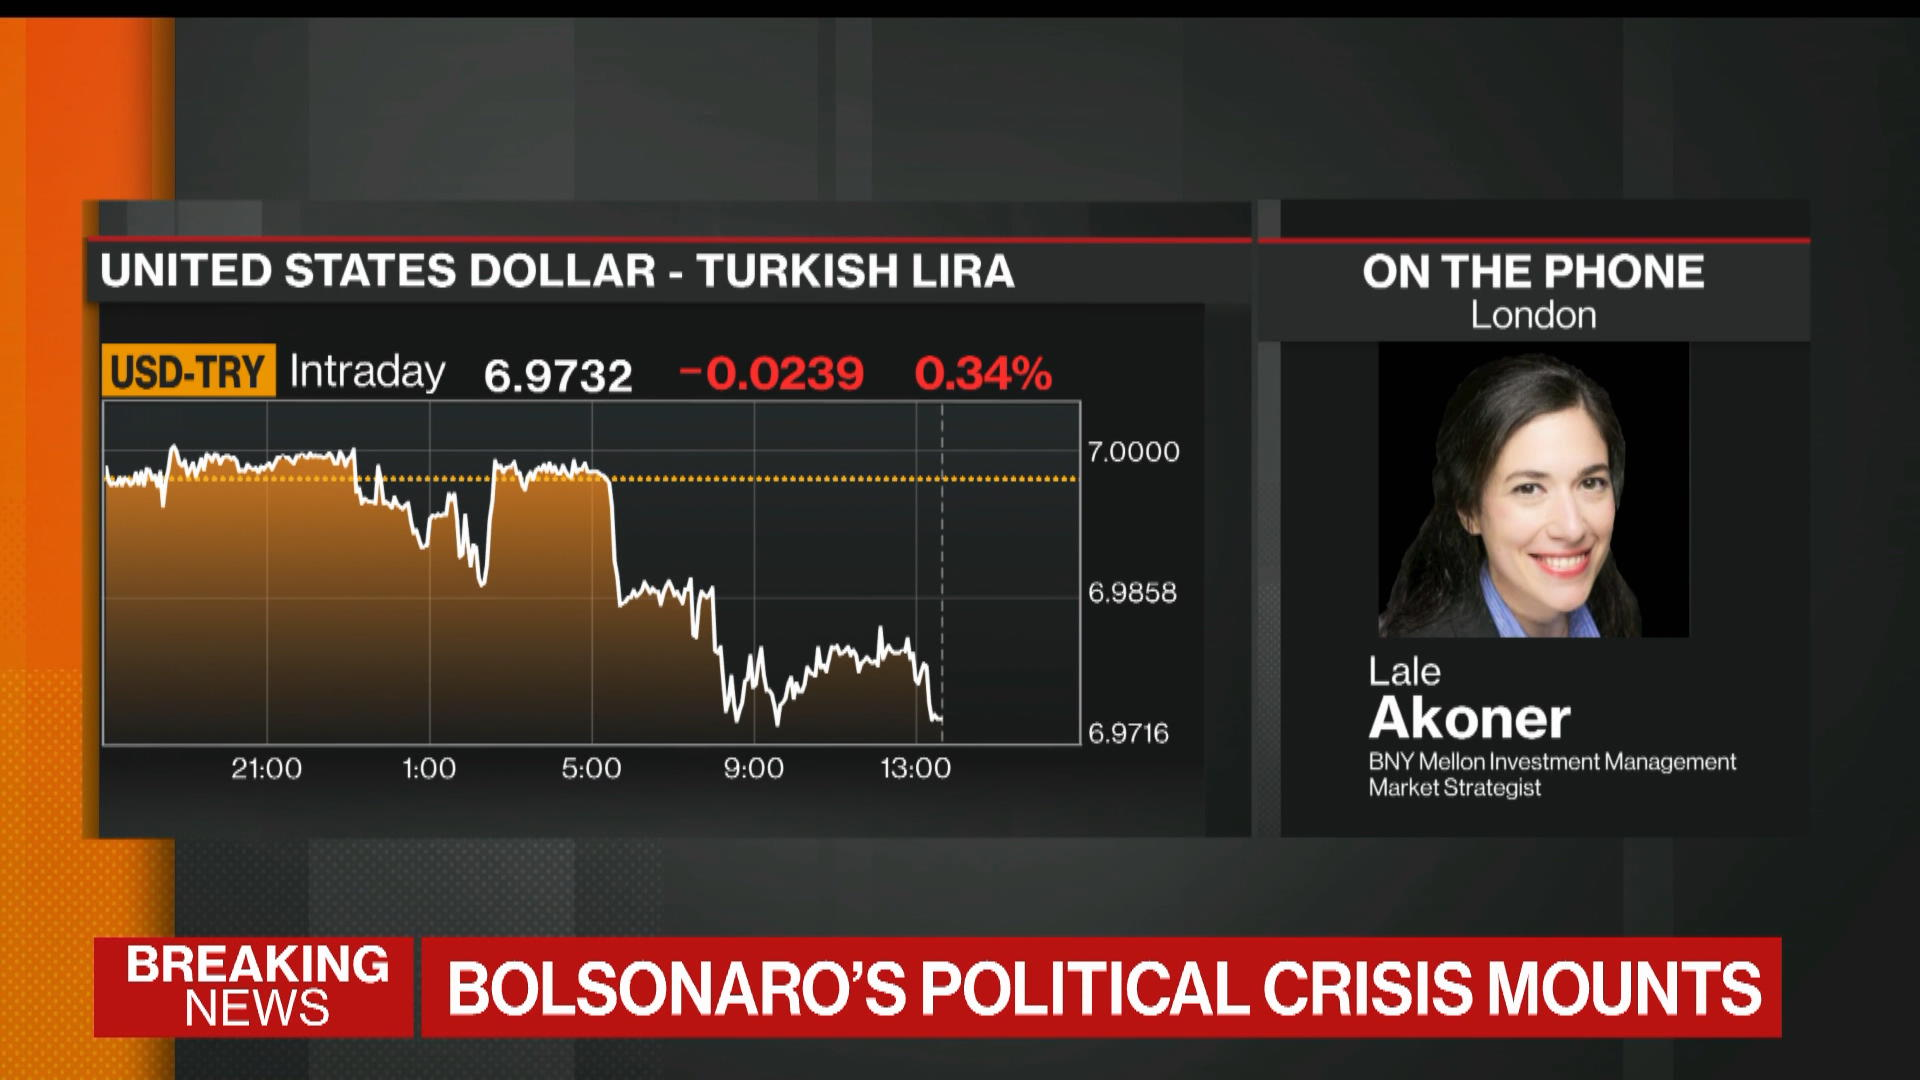 BNY Mellon's Akoner on EM, China, IMF Lending, Globalization